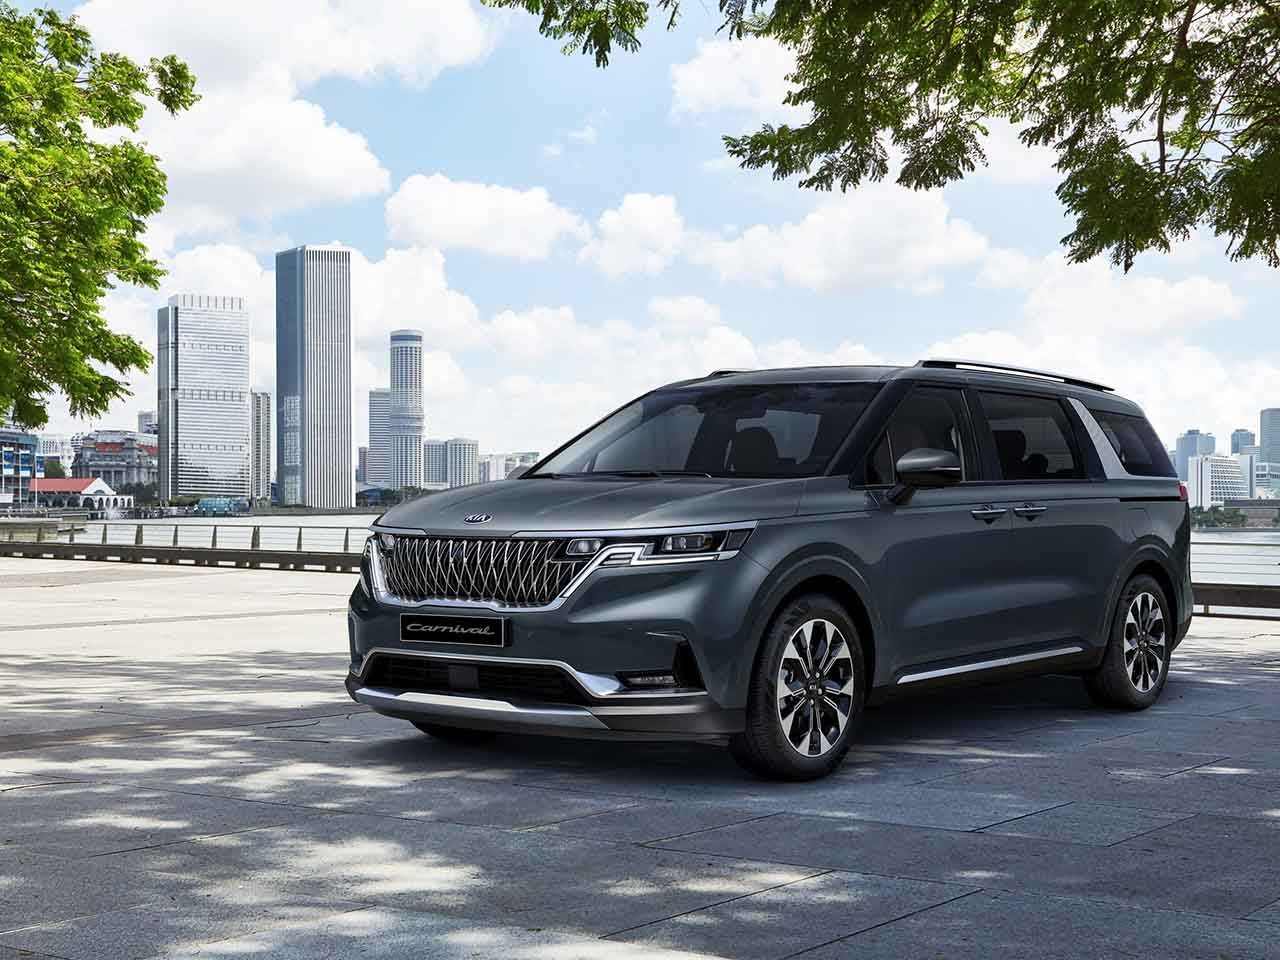 2021MY Kia Carnival (or Sedona)